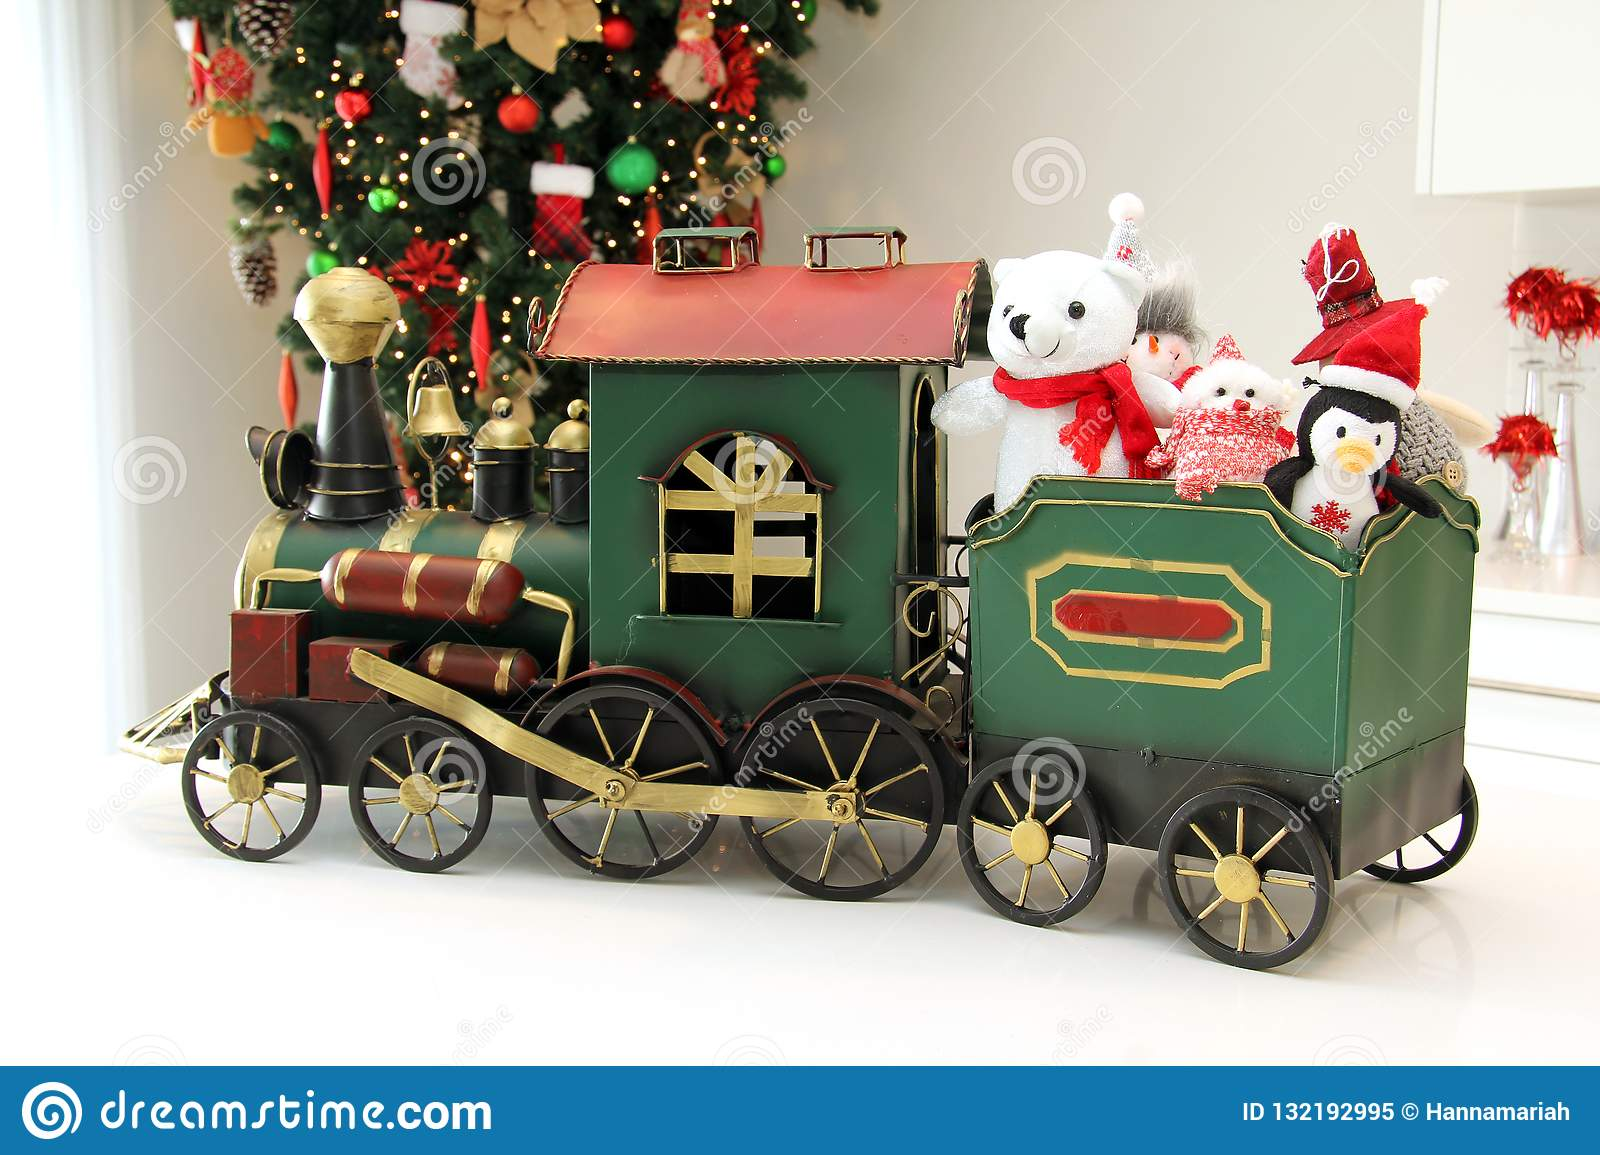 Christmas train ornament with stuffed animals